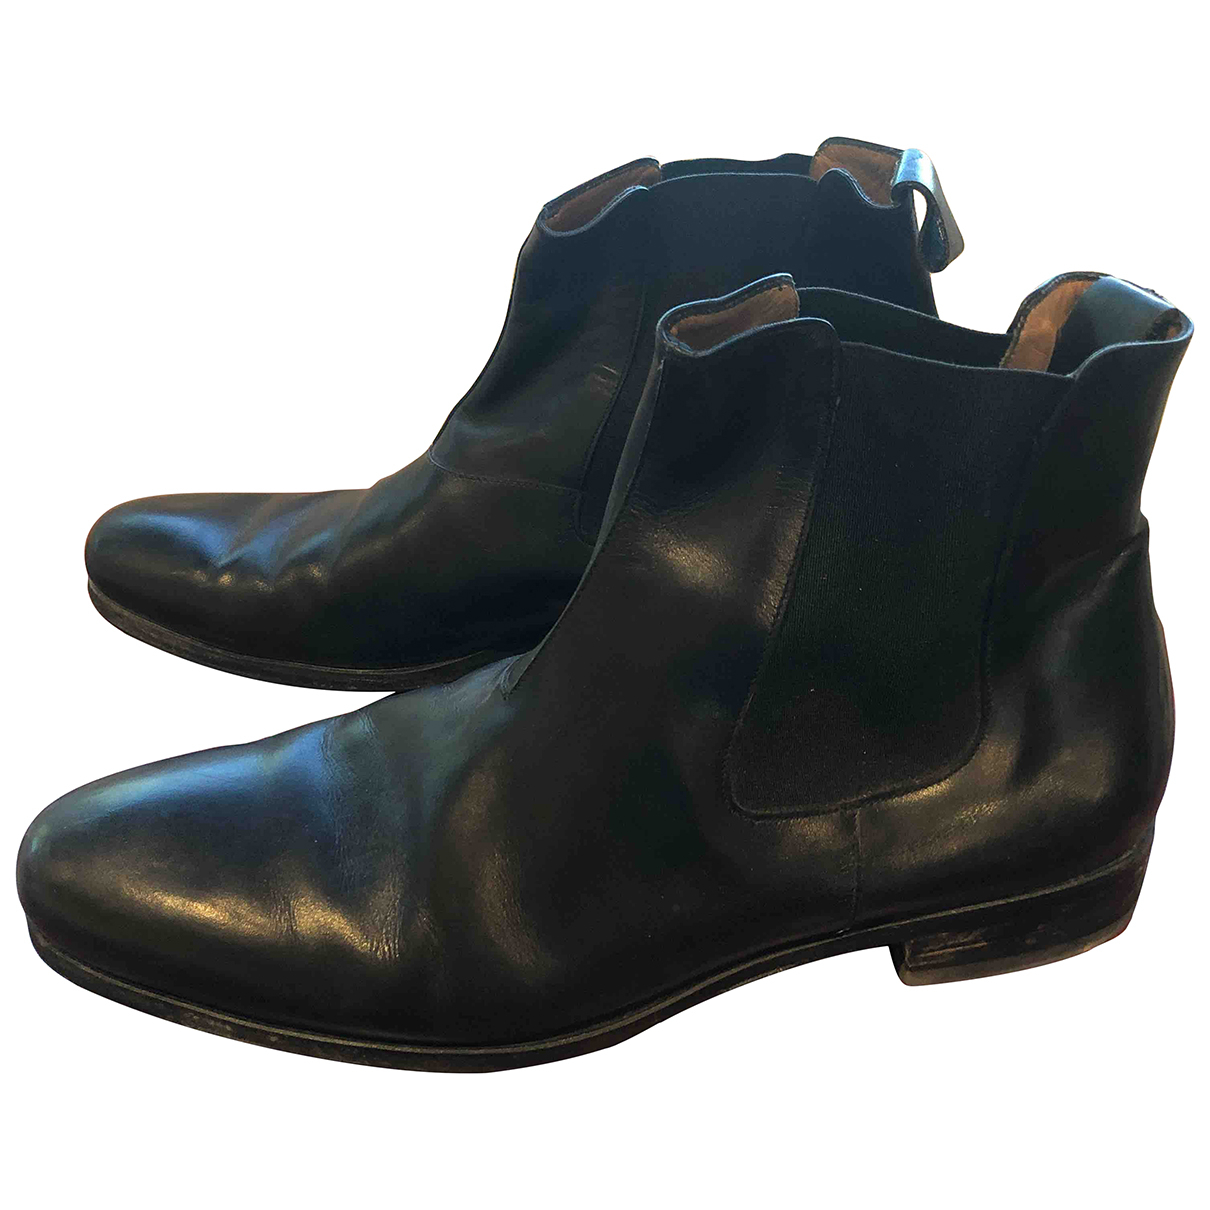 Bally N Black Leather Boots for Men 9 UK